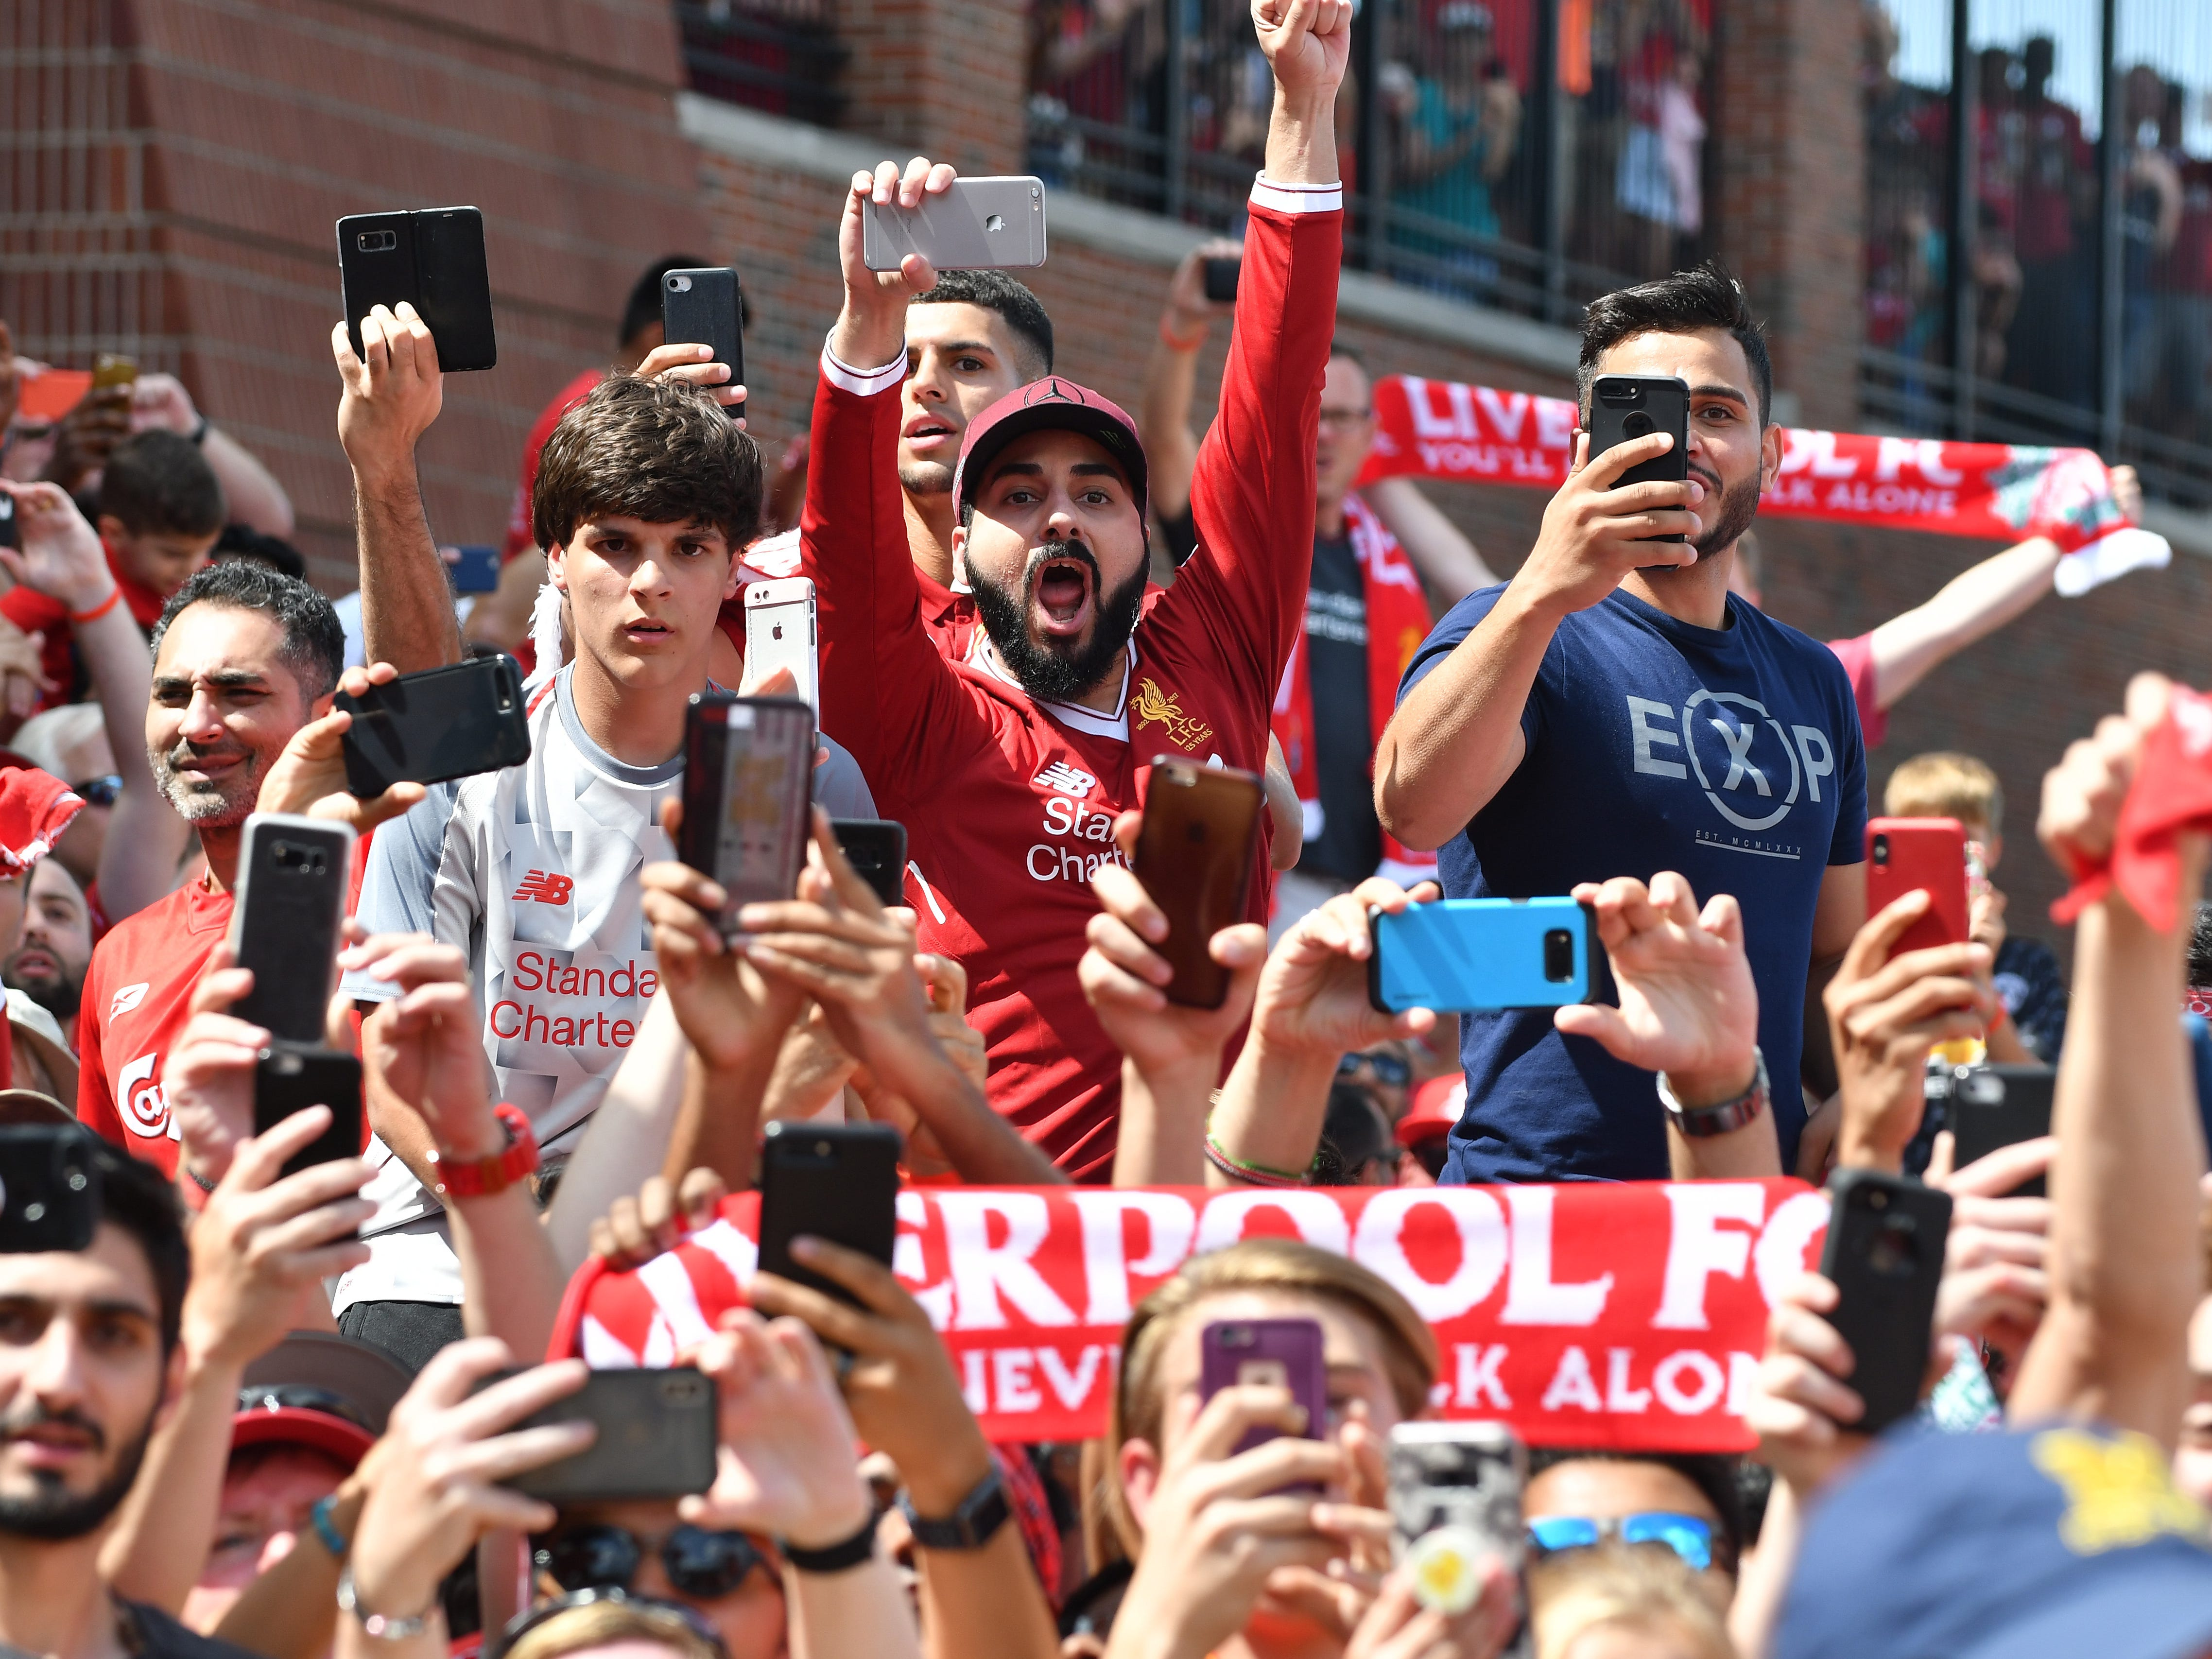 Crowds react as Manchester United and Liverpool buses arrive for the International Champions Cup game  at Michigan Stadium on the campus of University of Michigan in Ann Arbor, Michigan on July 28, 2018.